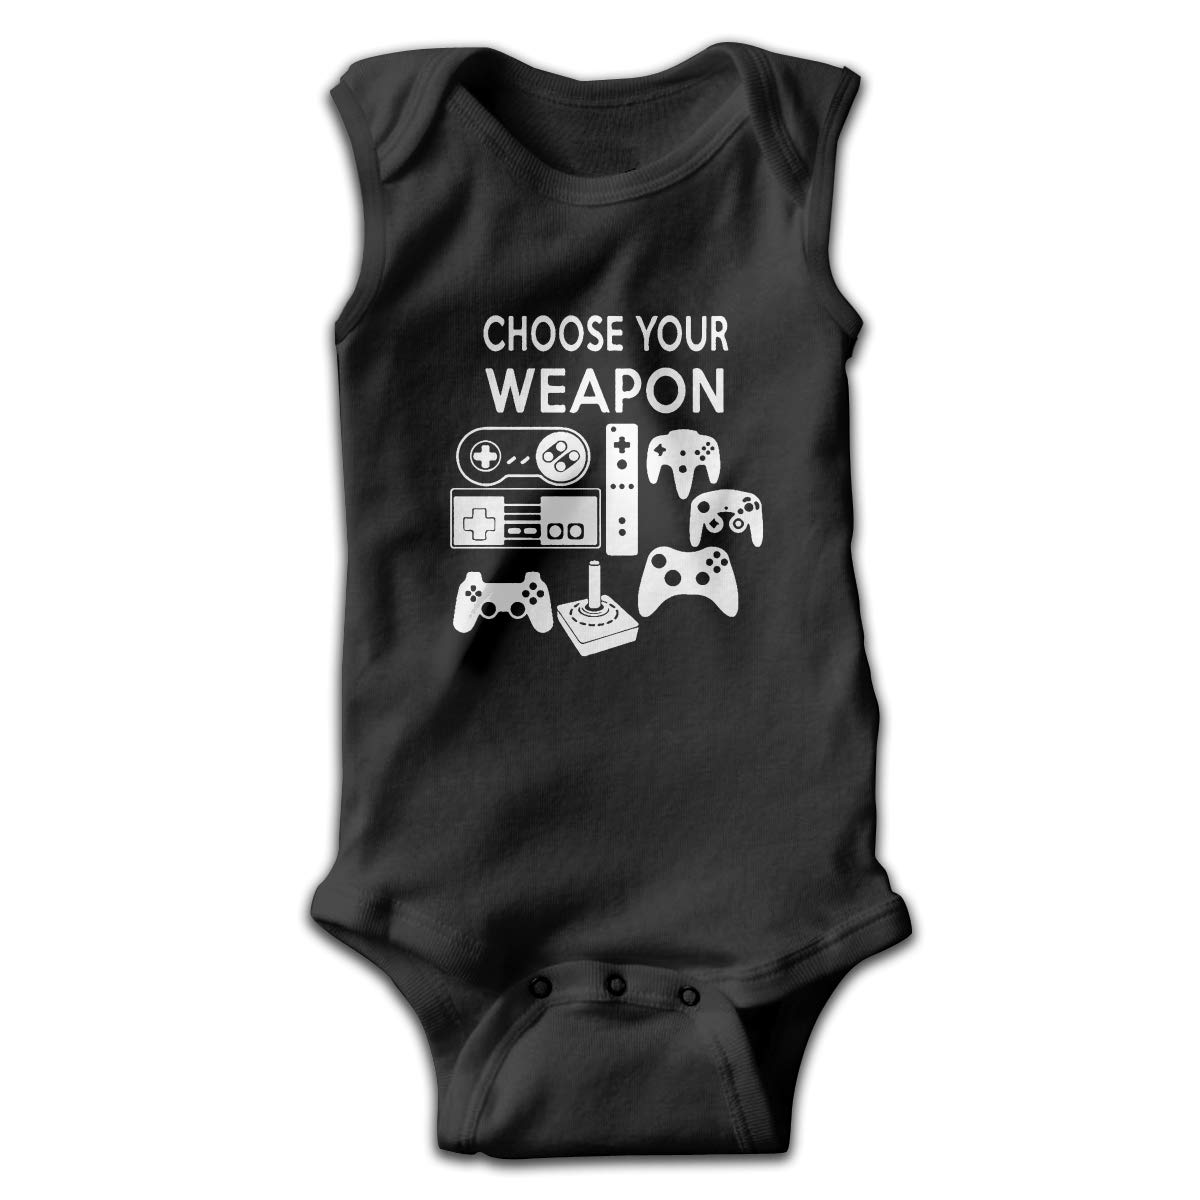 Choose Your Weapon Video Game Smalls Baby Onesie,Infant Bodysuit Black